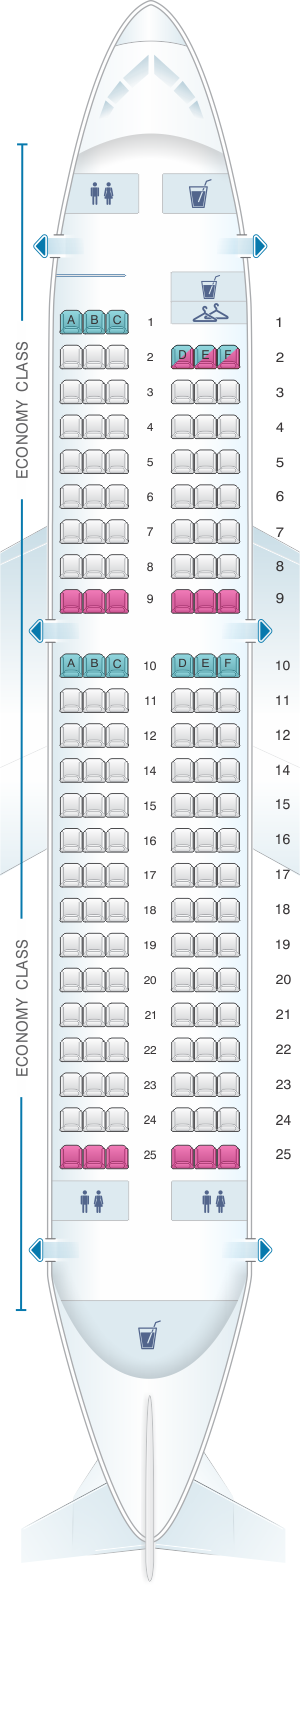 Seat map for Iberia Airbus A319 single-class